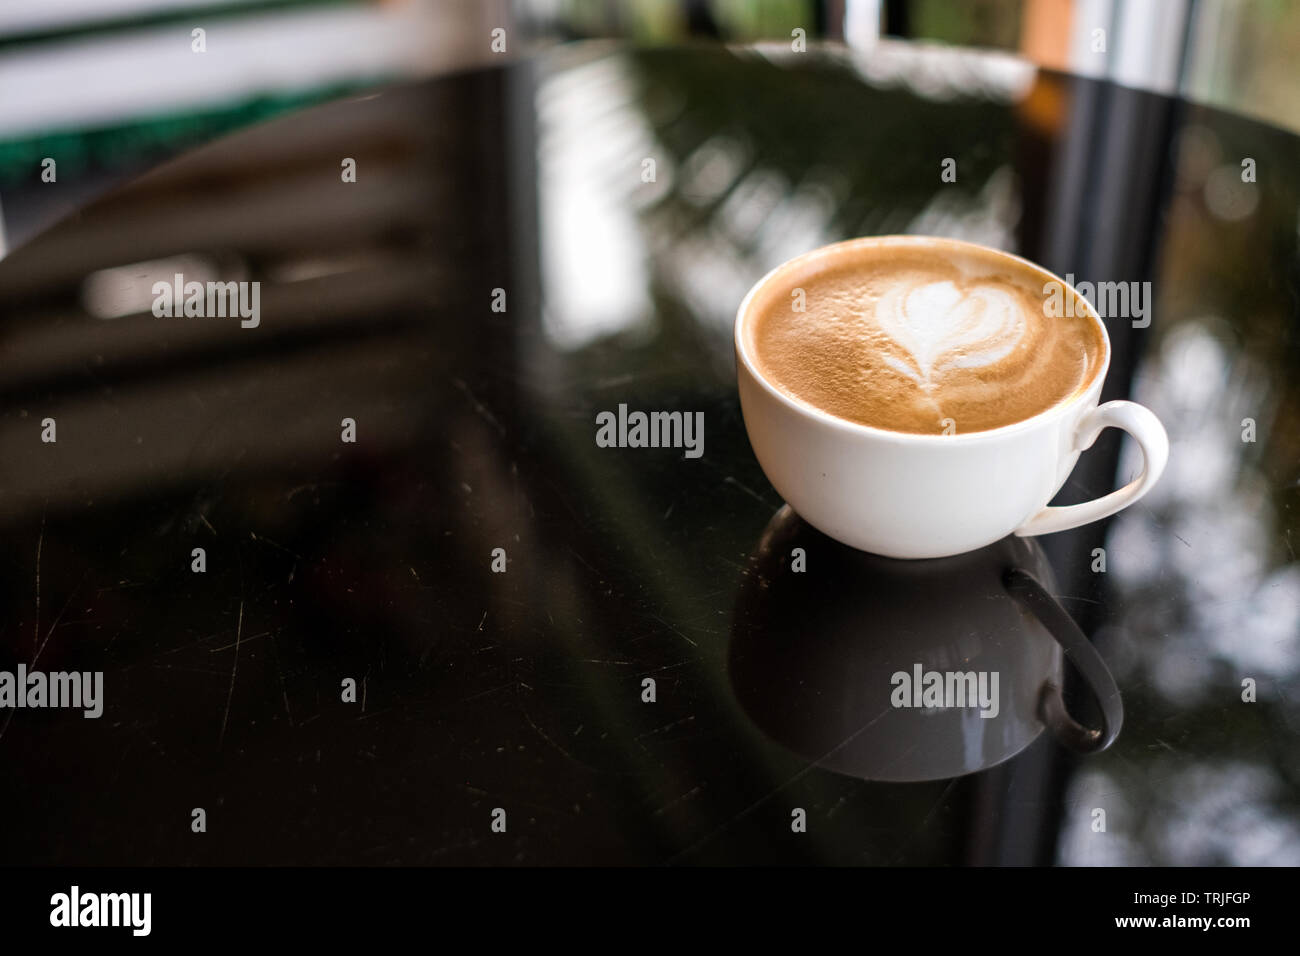 Coffee Latte Heart Shape In White Cup On Glass Table Stock Photo